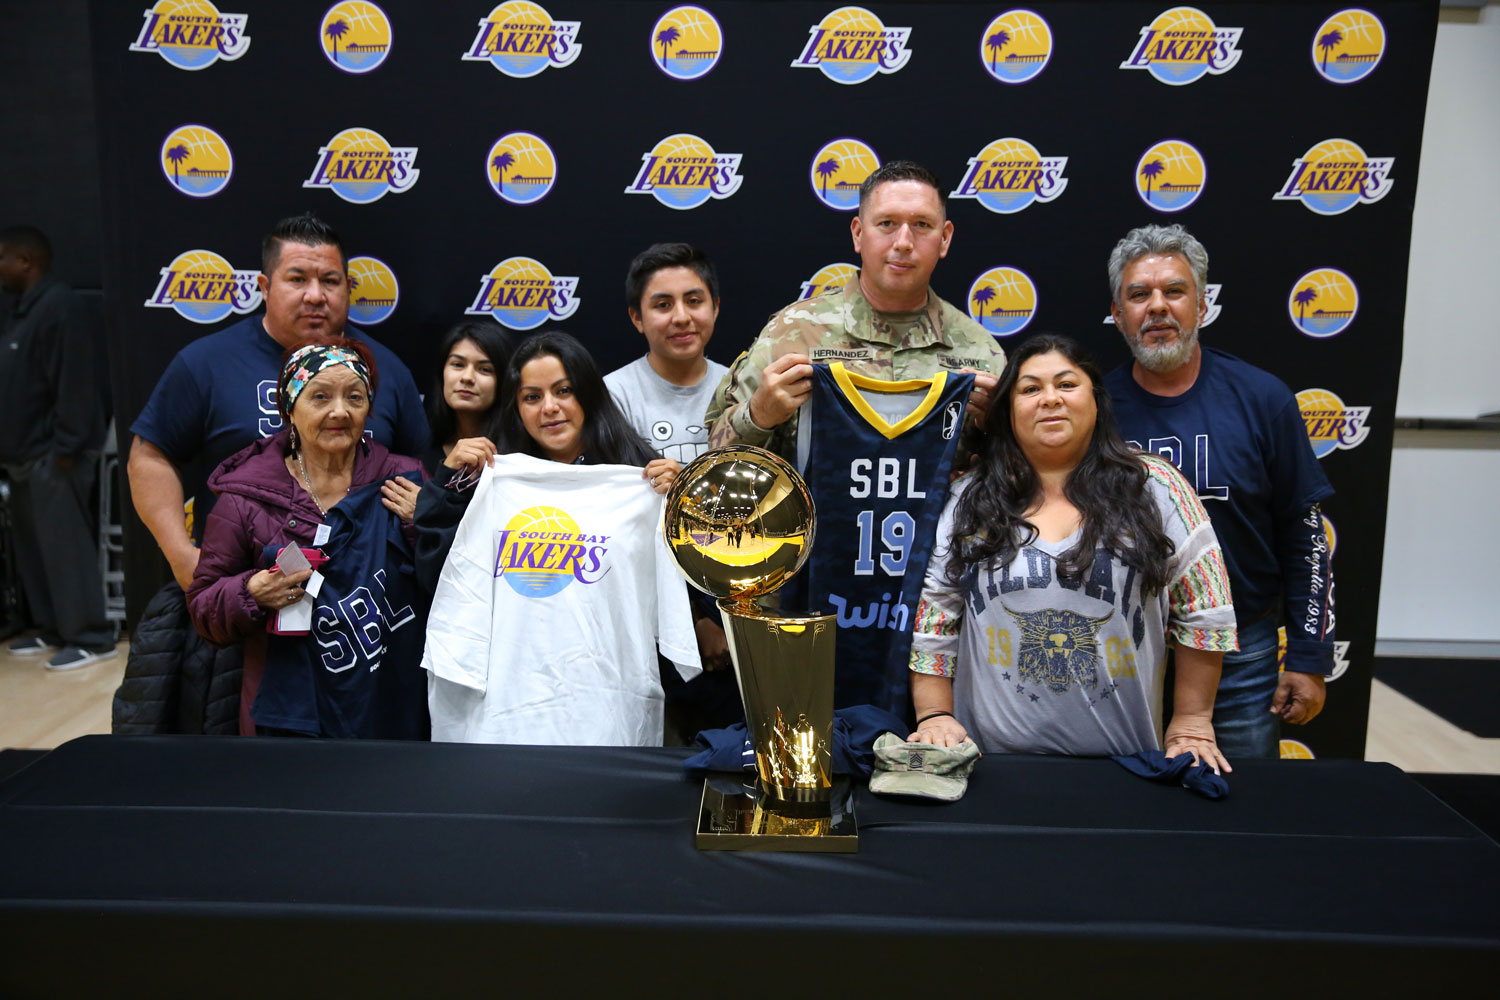 Trophy photo at South Bay Lakers Military Appreciation Night